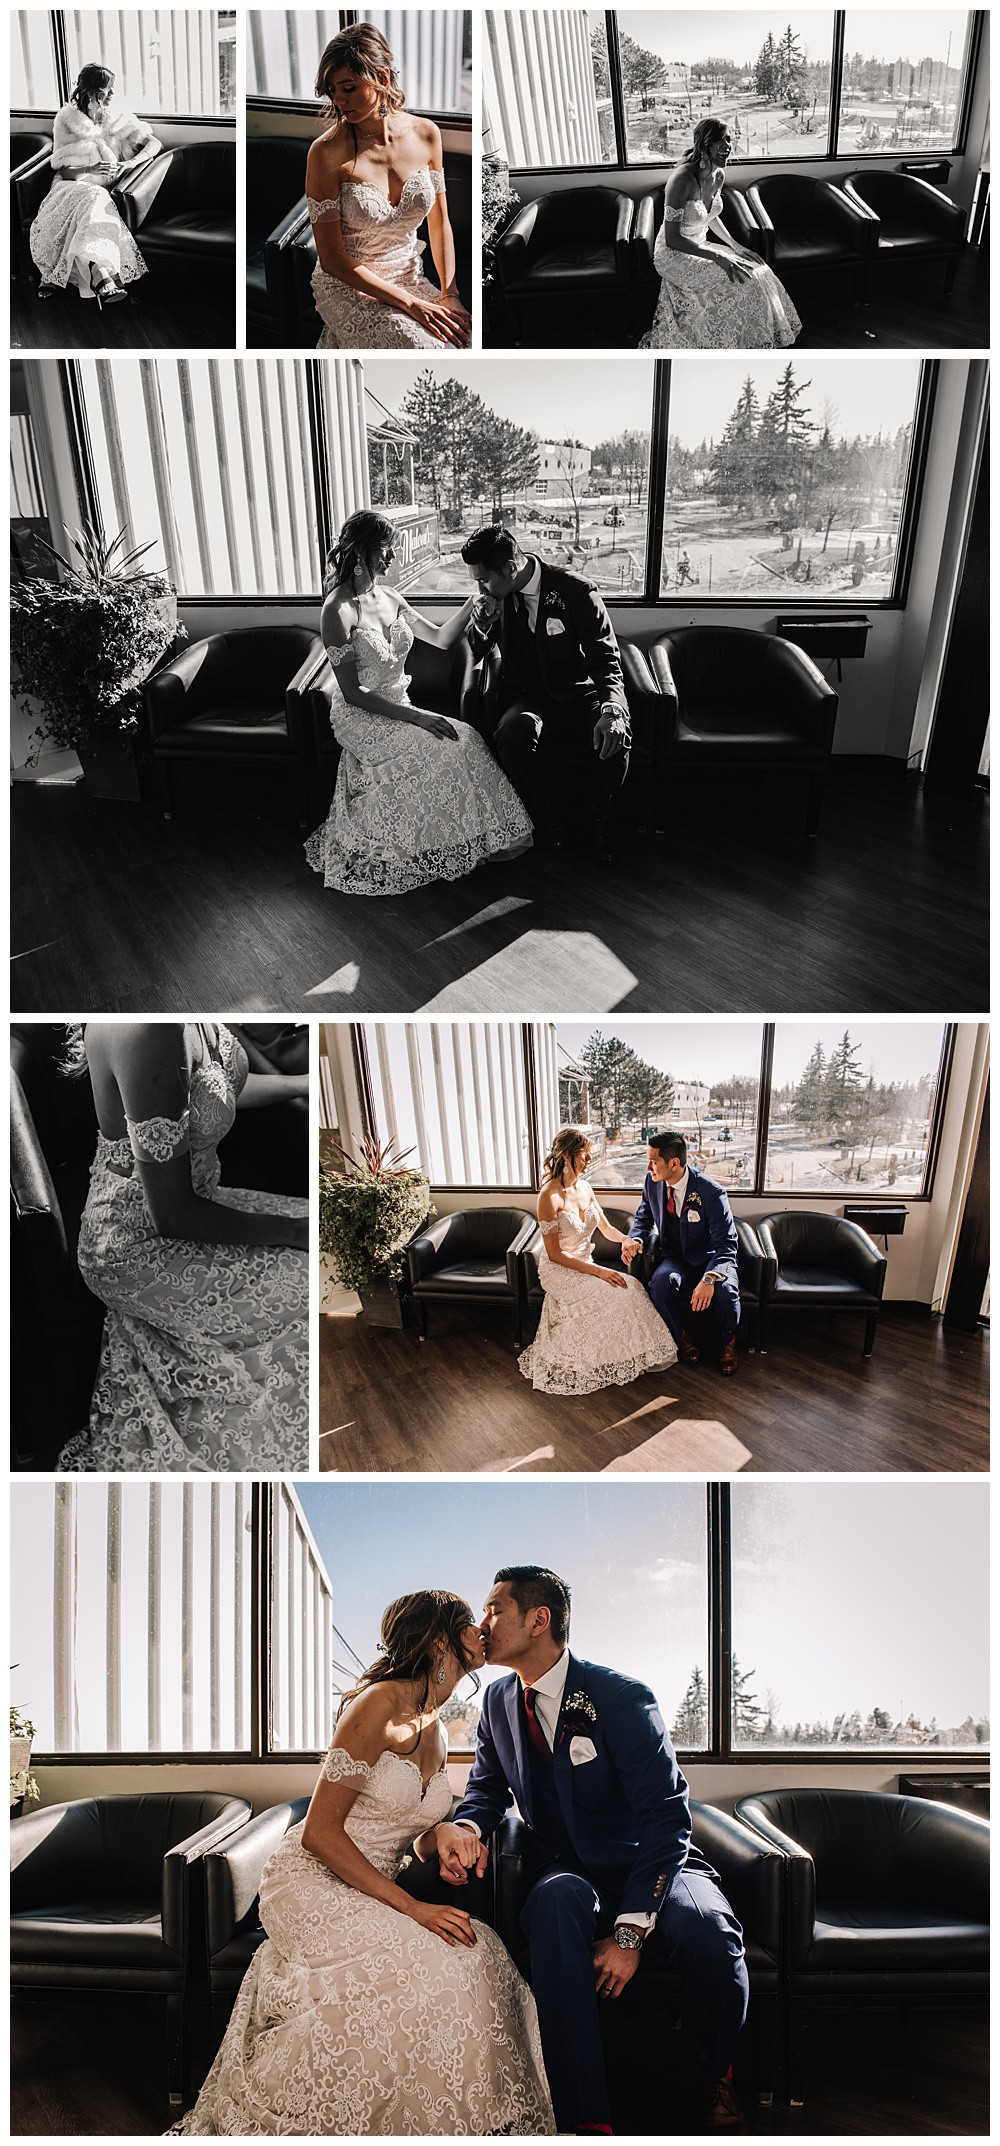 Ottawa Wedding Photographer, Ottawa Wedding Photography, Bride & Groom Portraits, Lago Bar & Grill